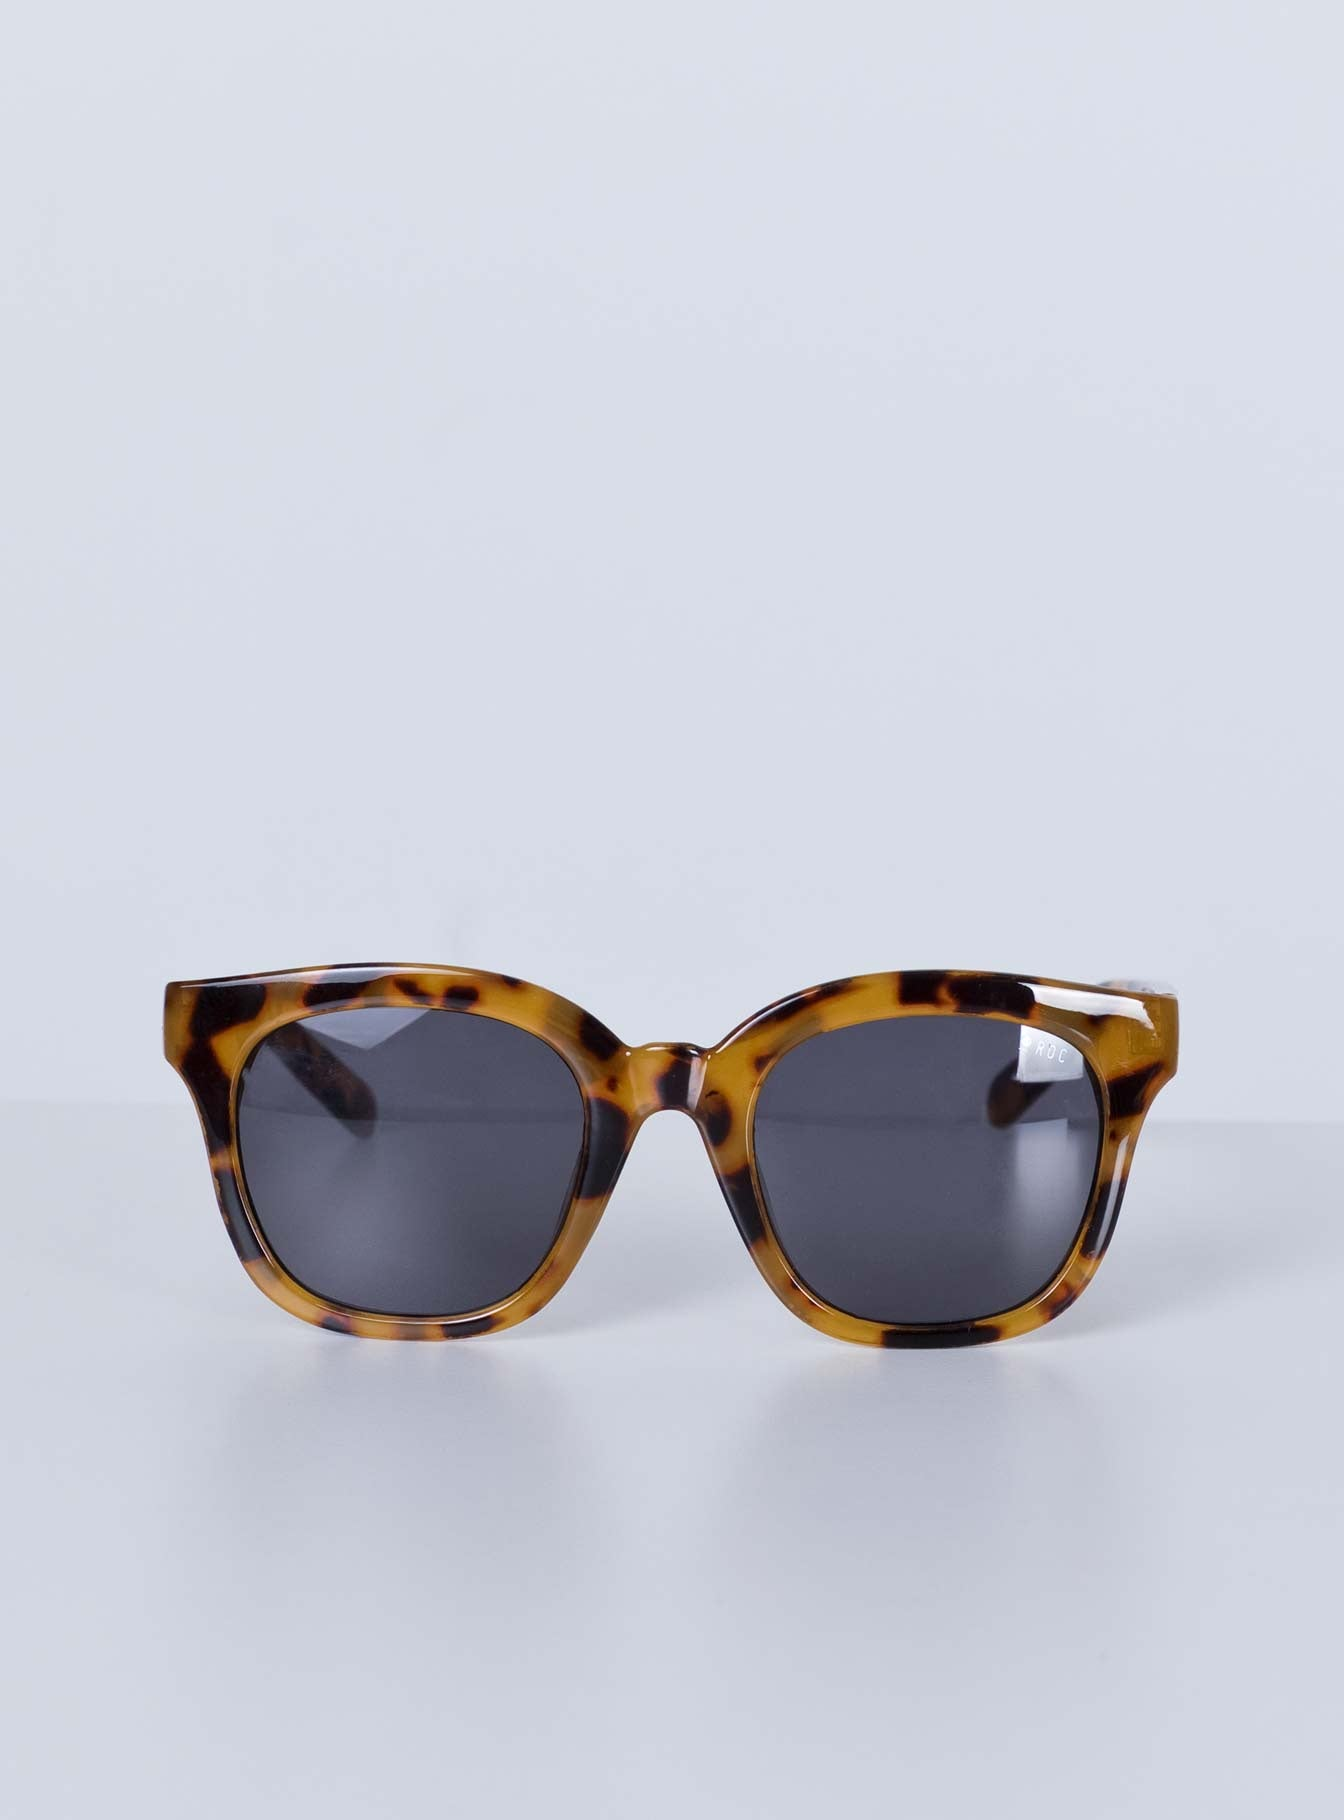 In Touch Sunglasses Tort